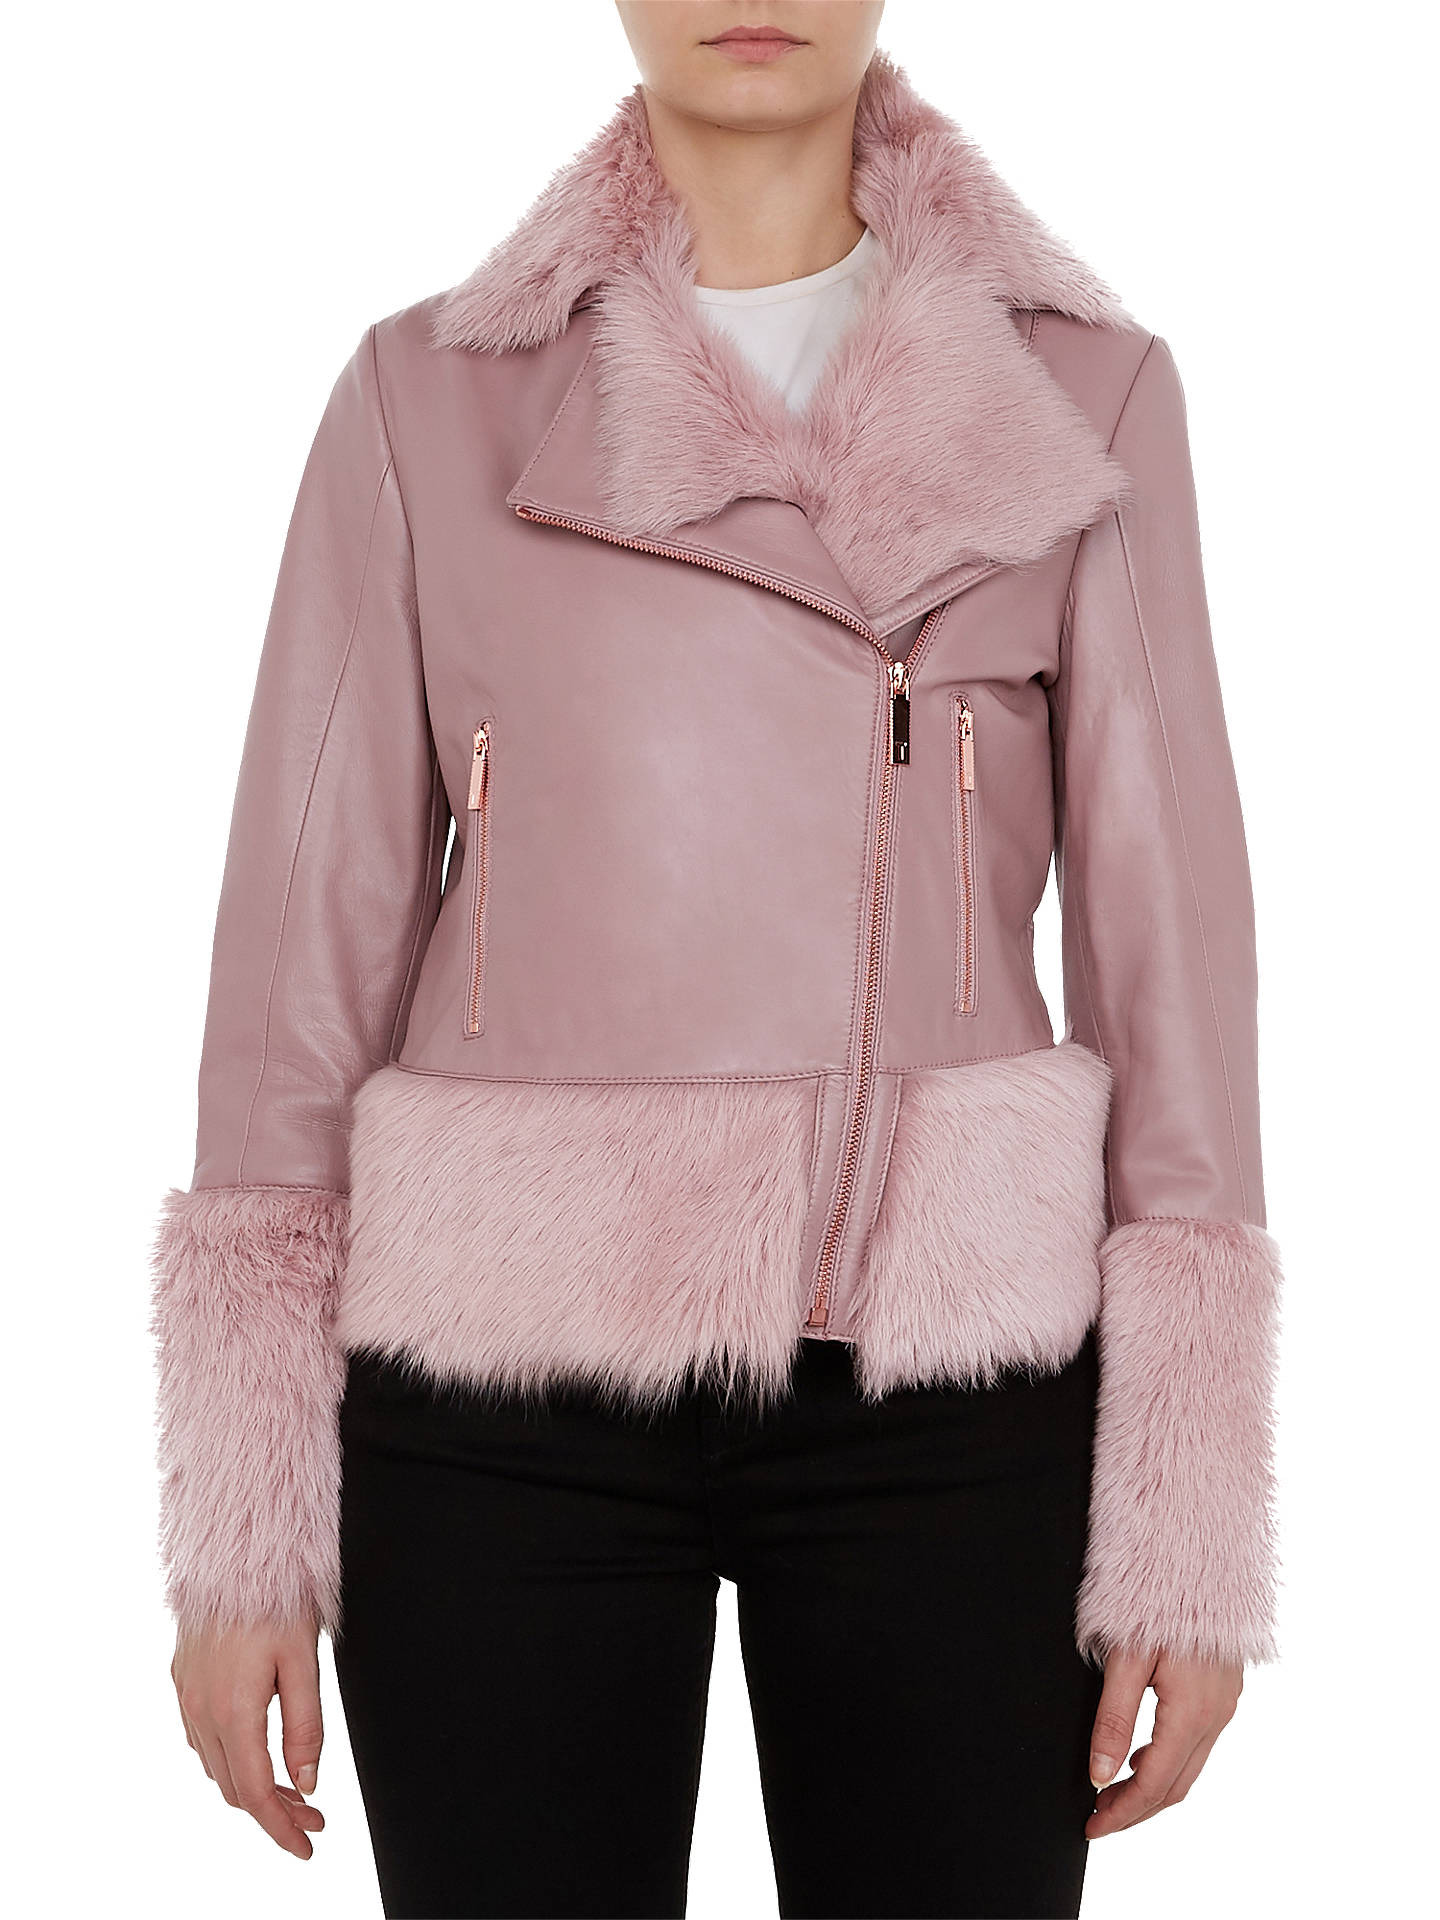 detailed images aesthetic appearance a few days away Ted Baker Serer Shirling Biker Jacket, Pink at John Lewis ...